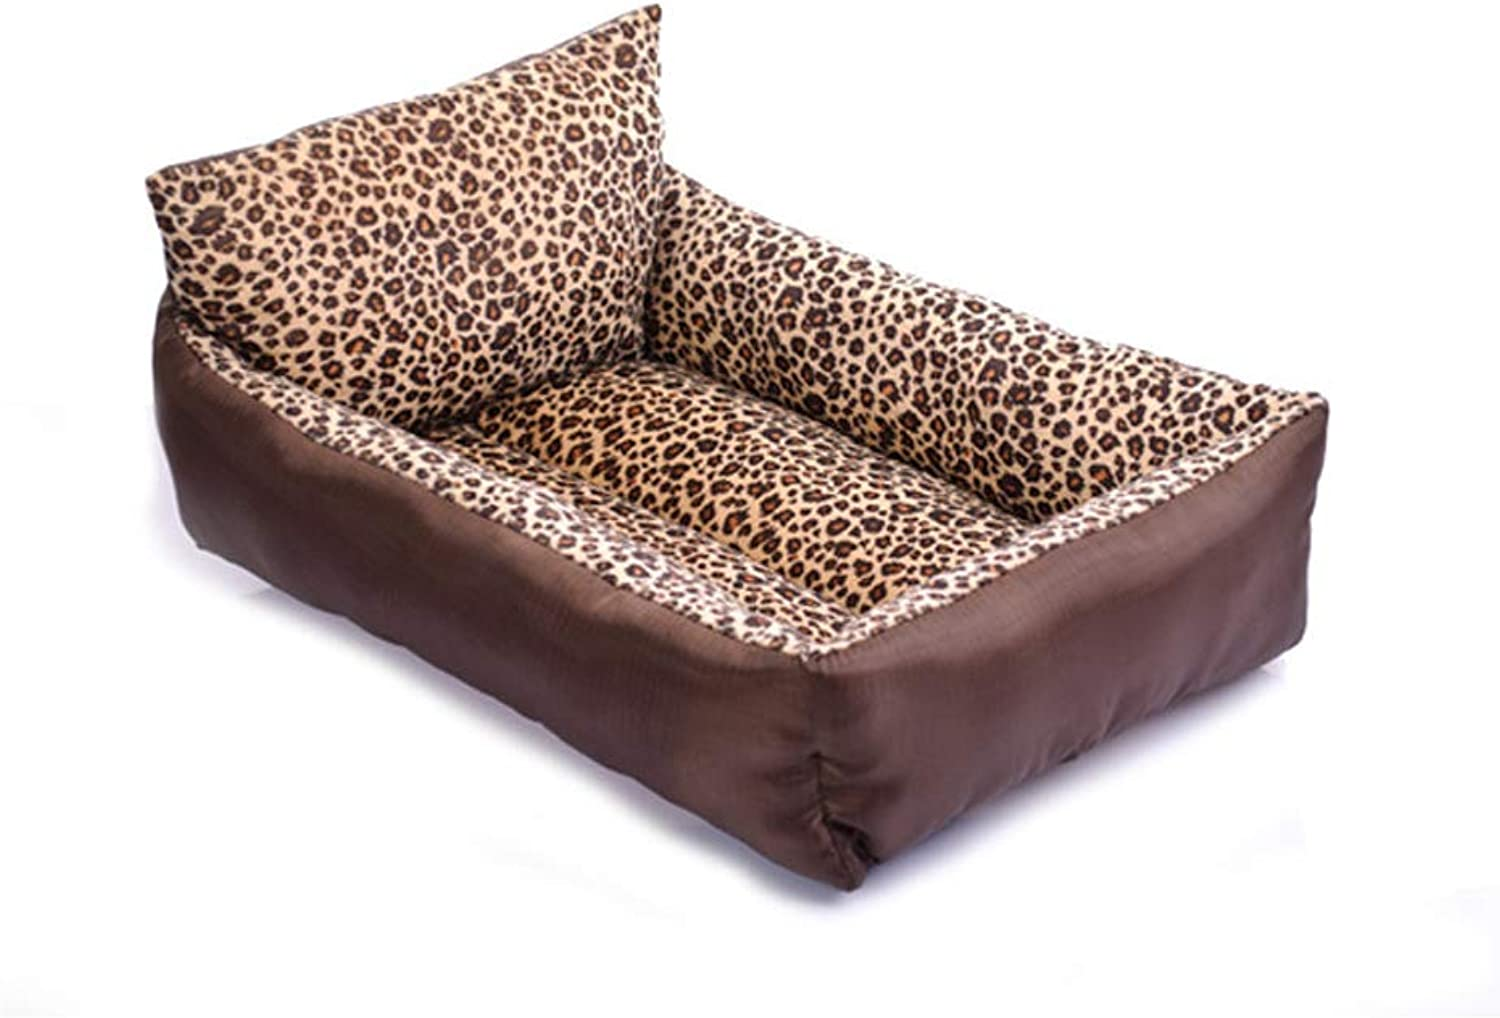 Pet Bed, Pet Kennel cat Litter, Winter Warm Breathable Cat Dog House  Brown,Brown,65  55  14cm